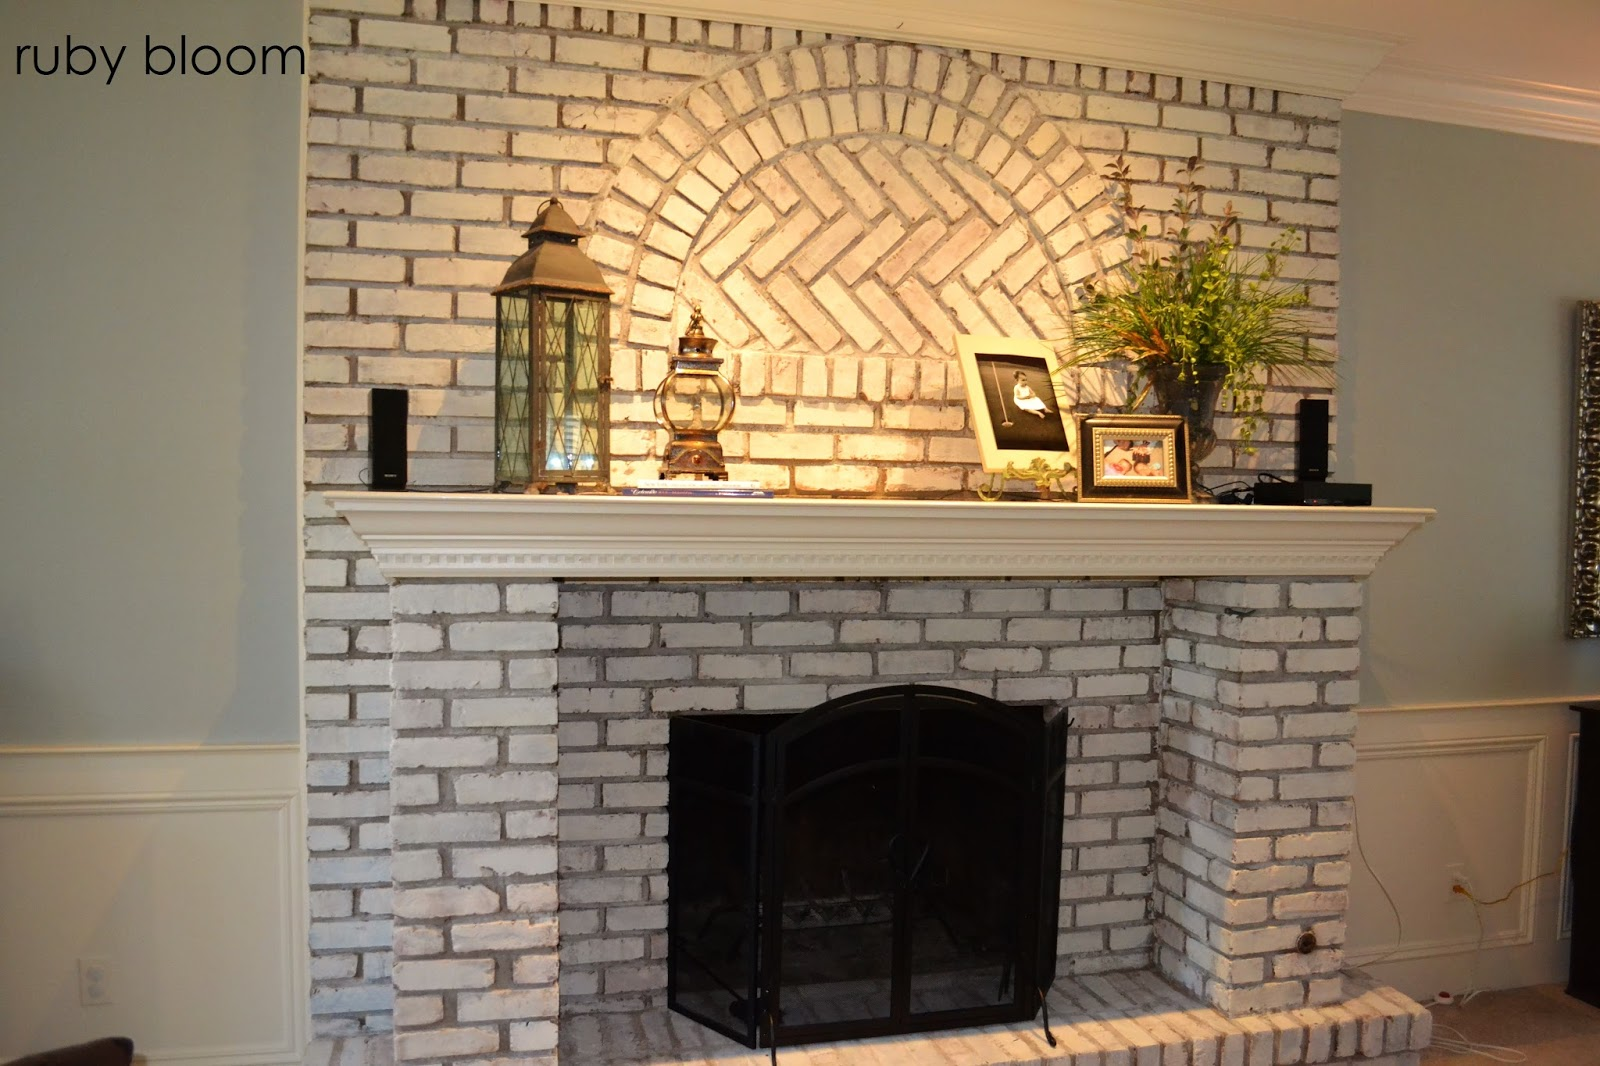 Fireplace Brick Paint Colors Ruby Bloom: Painted Brick Fireplace